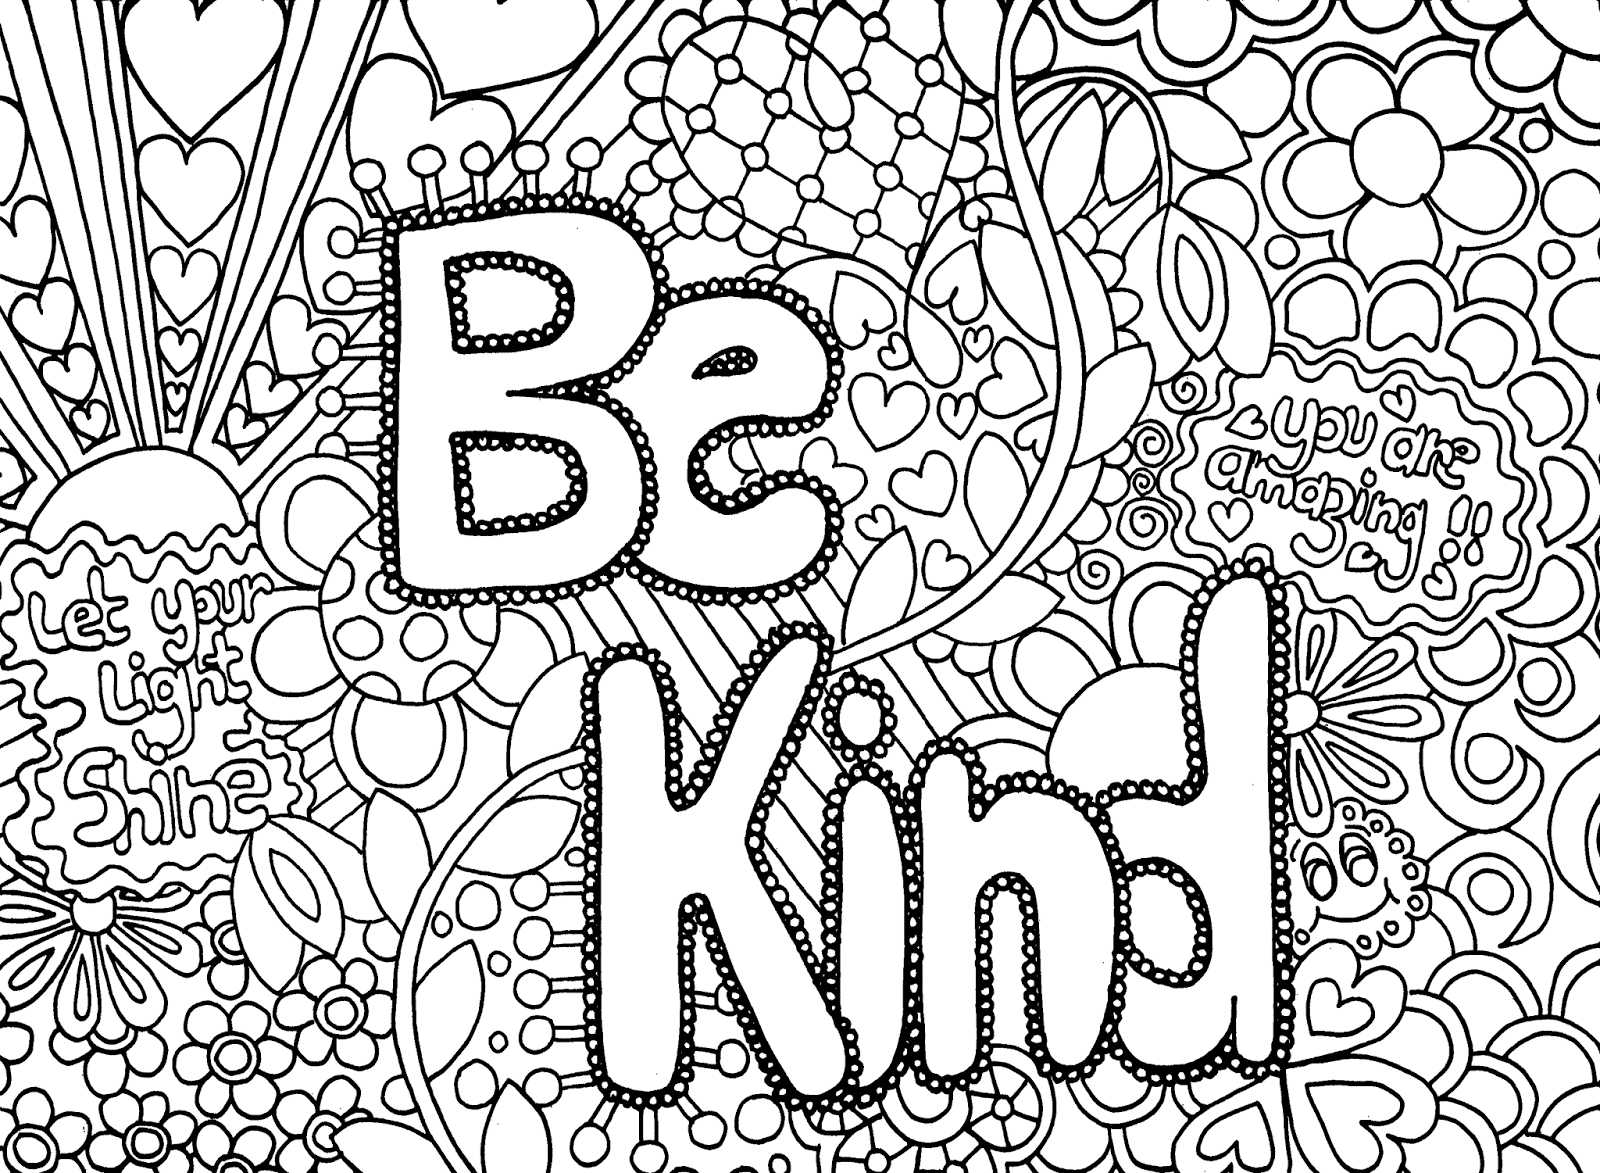 for the last few years kids coloring pages printed from the internet have become an very - Teen Color Pages